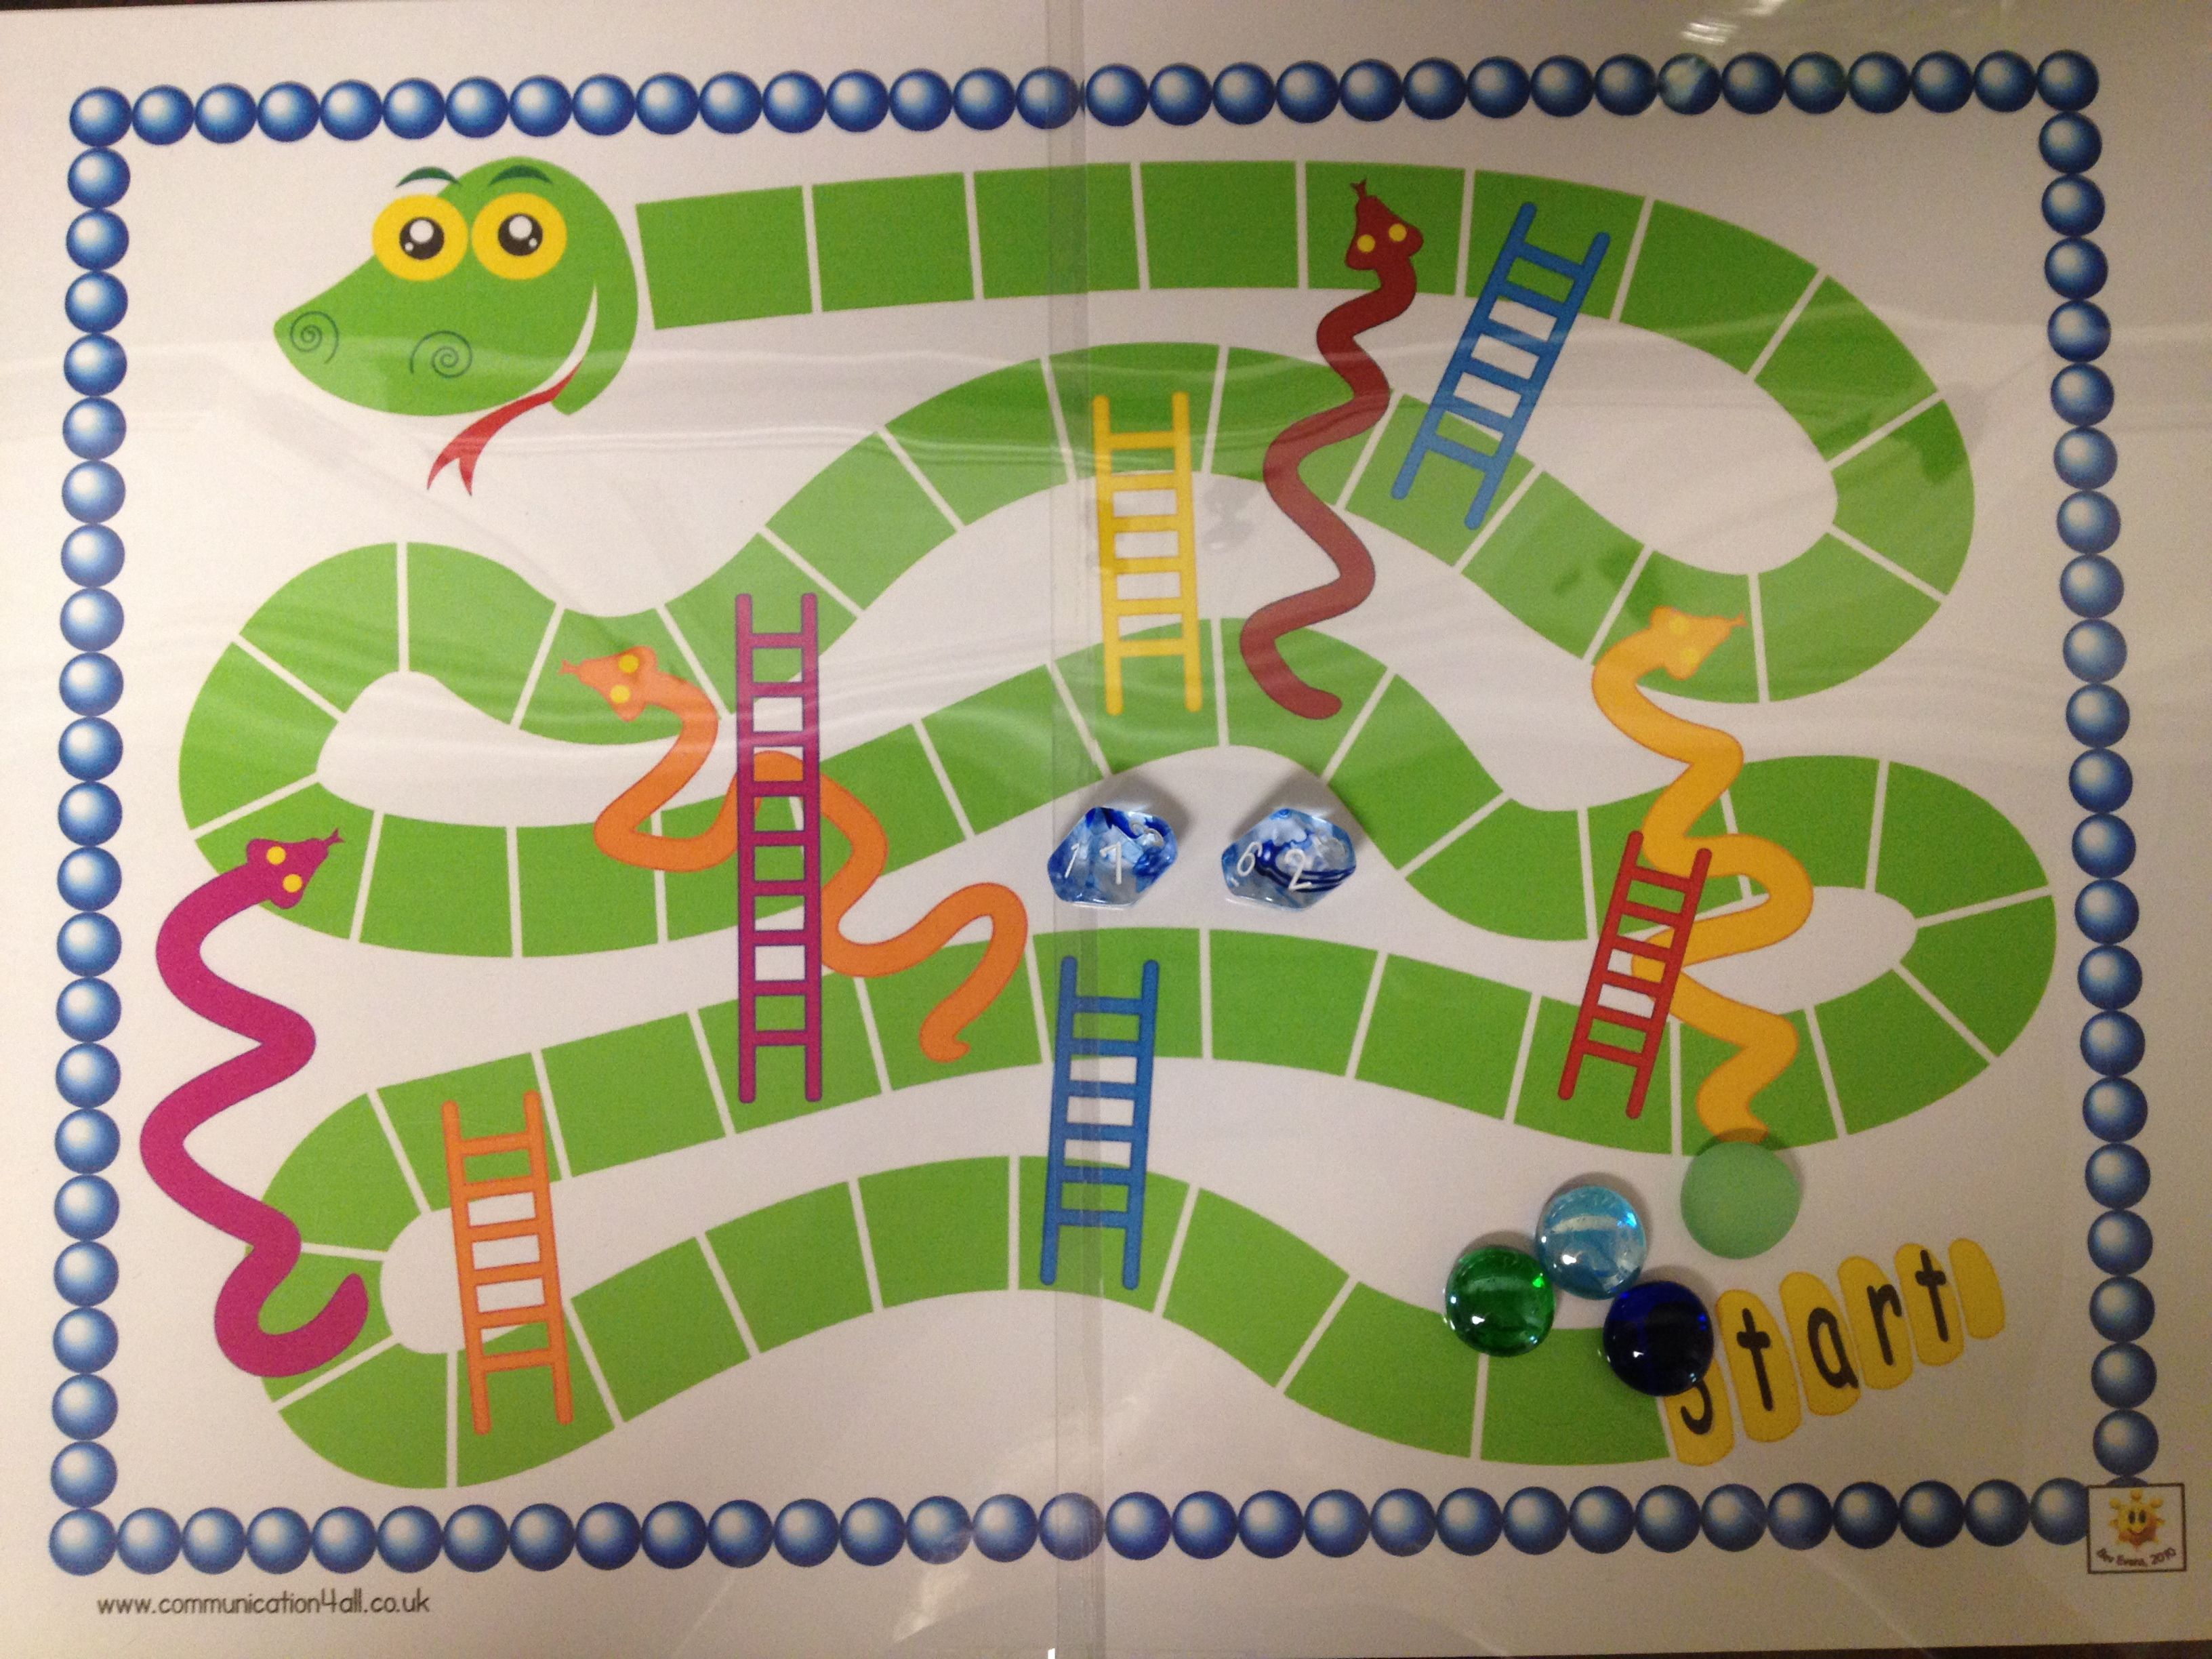 Pin By Hollie Munson On Math Preschool Board Games Math Board Games Kids Learning Activities Board game addition letters